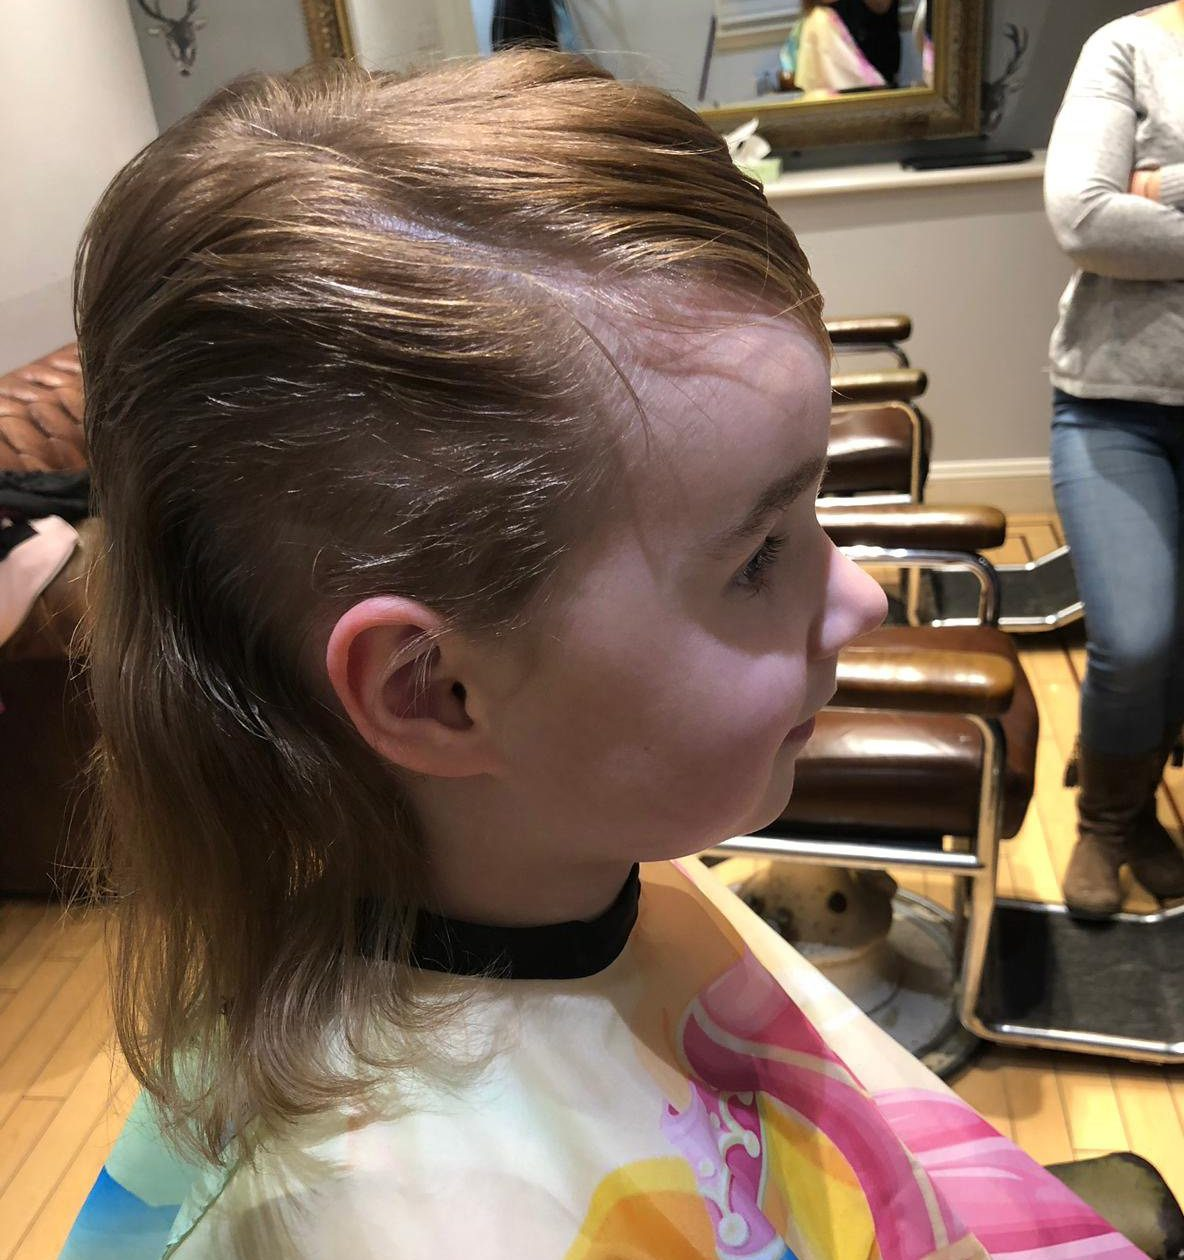 Sam Barr's 5-year-old daughter Jemma cut her hair after falling prey to sick Momo hackers and had to have a restyle at a hair salon.